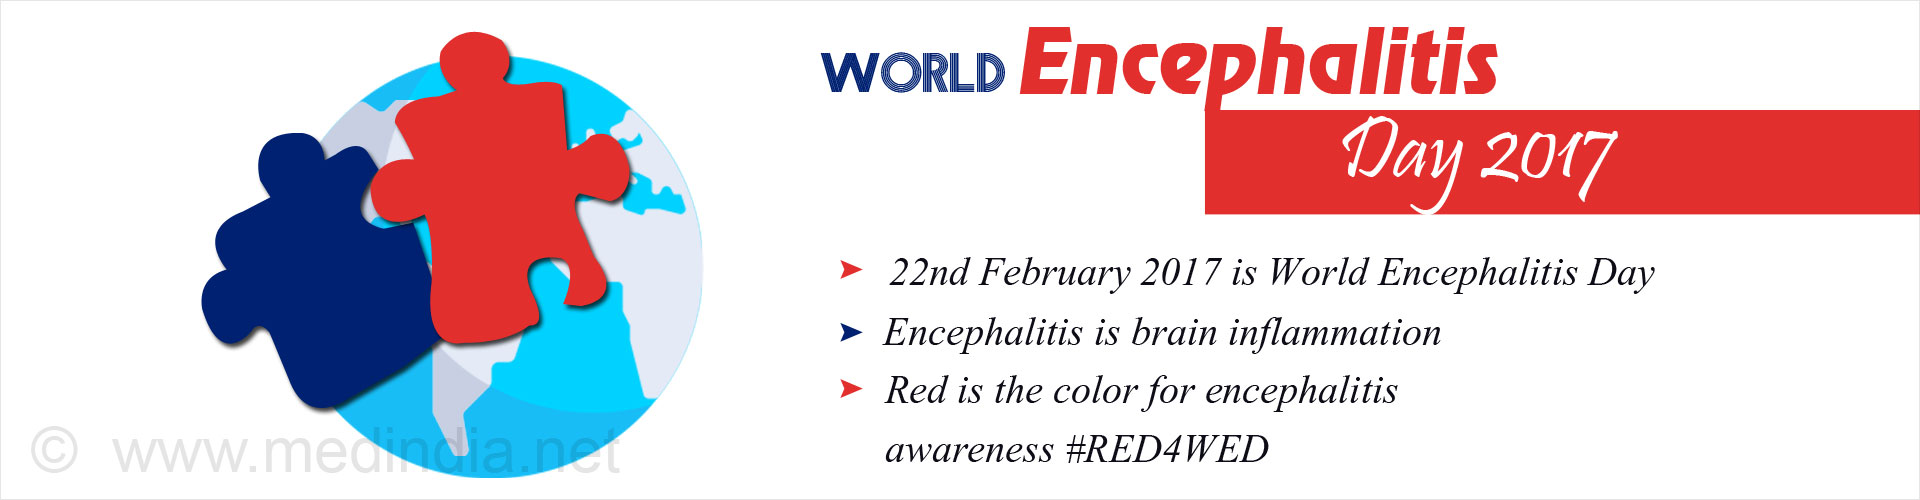 World Encephalitis Day 2017: #RED4WED